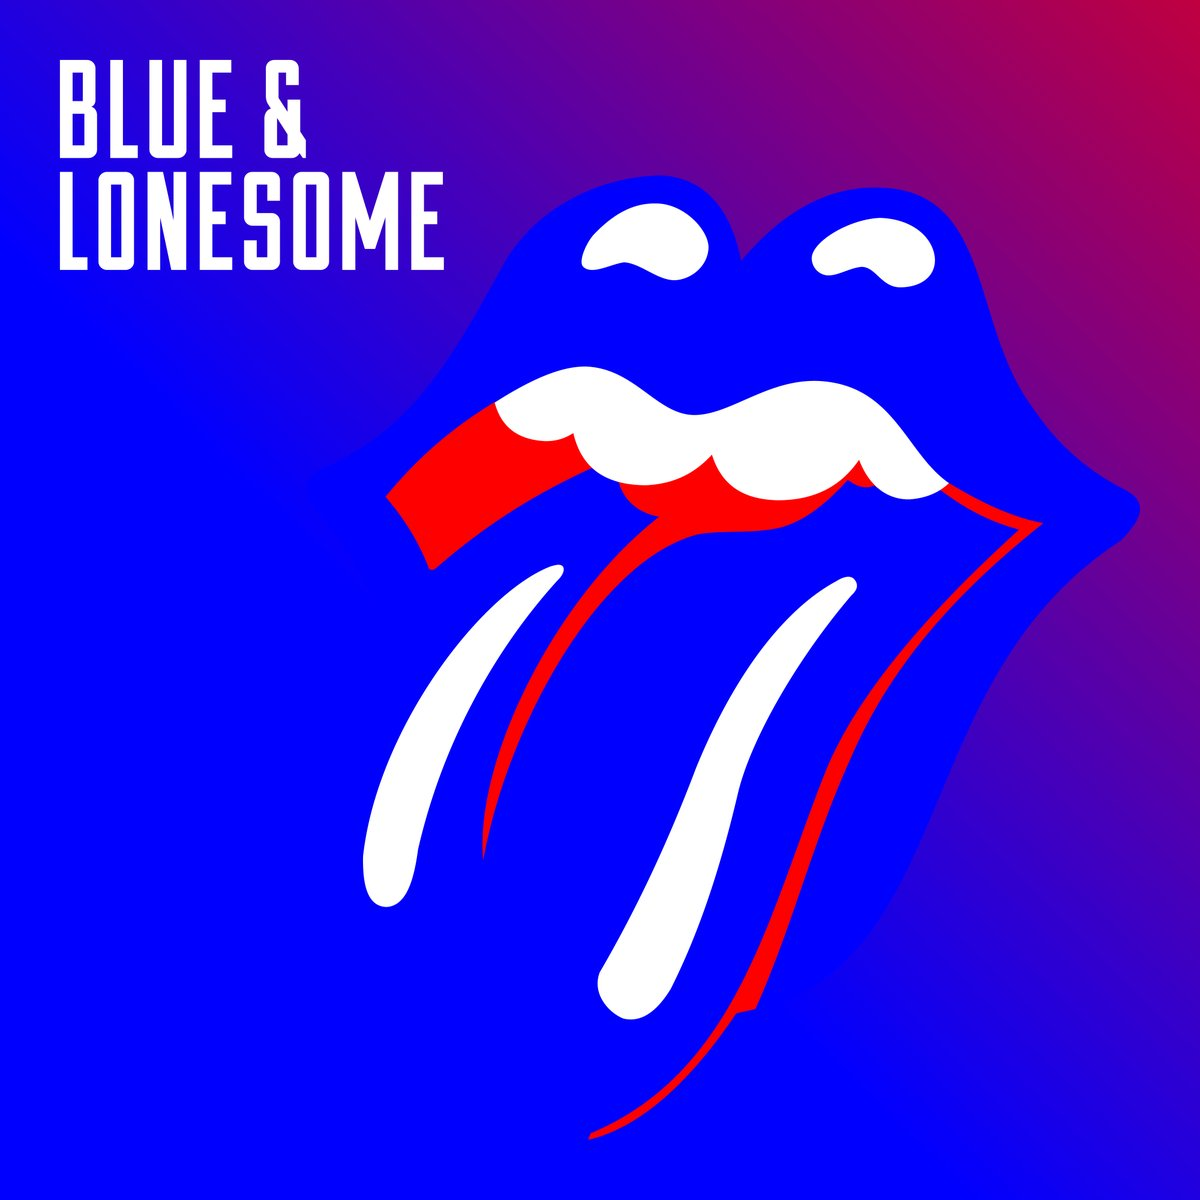 ALBUM OF THE WEEK: The Rolling Stones – Blue & Lonesome